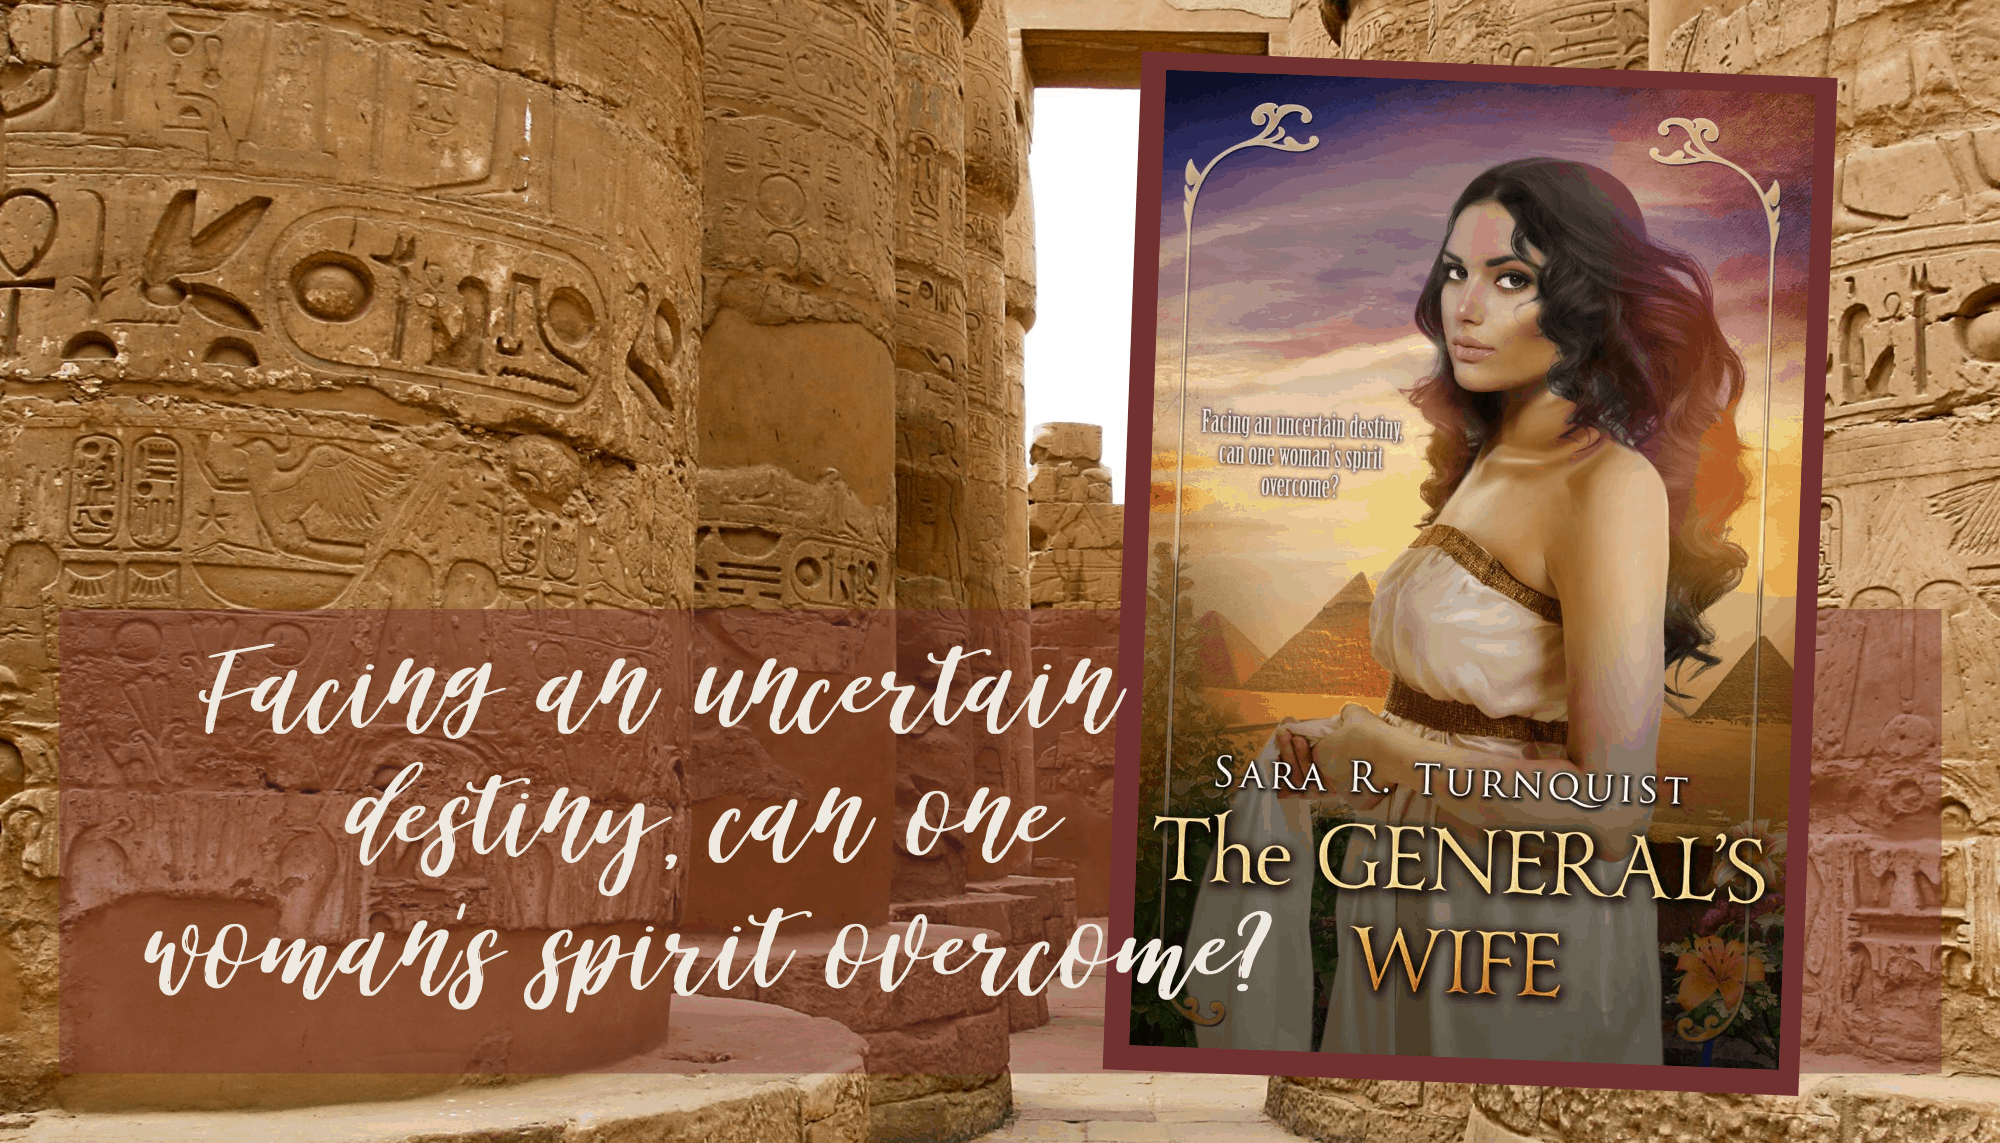 Copy of general's wife for website